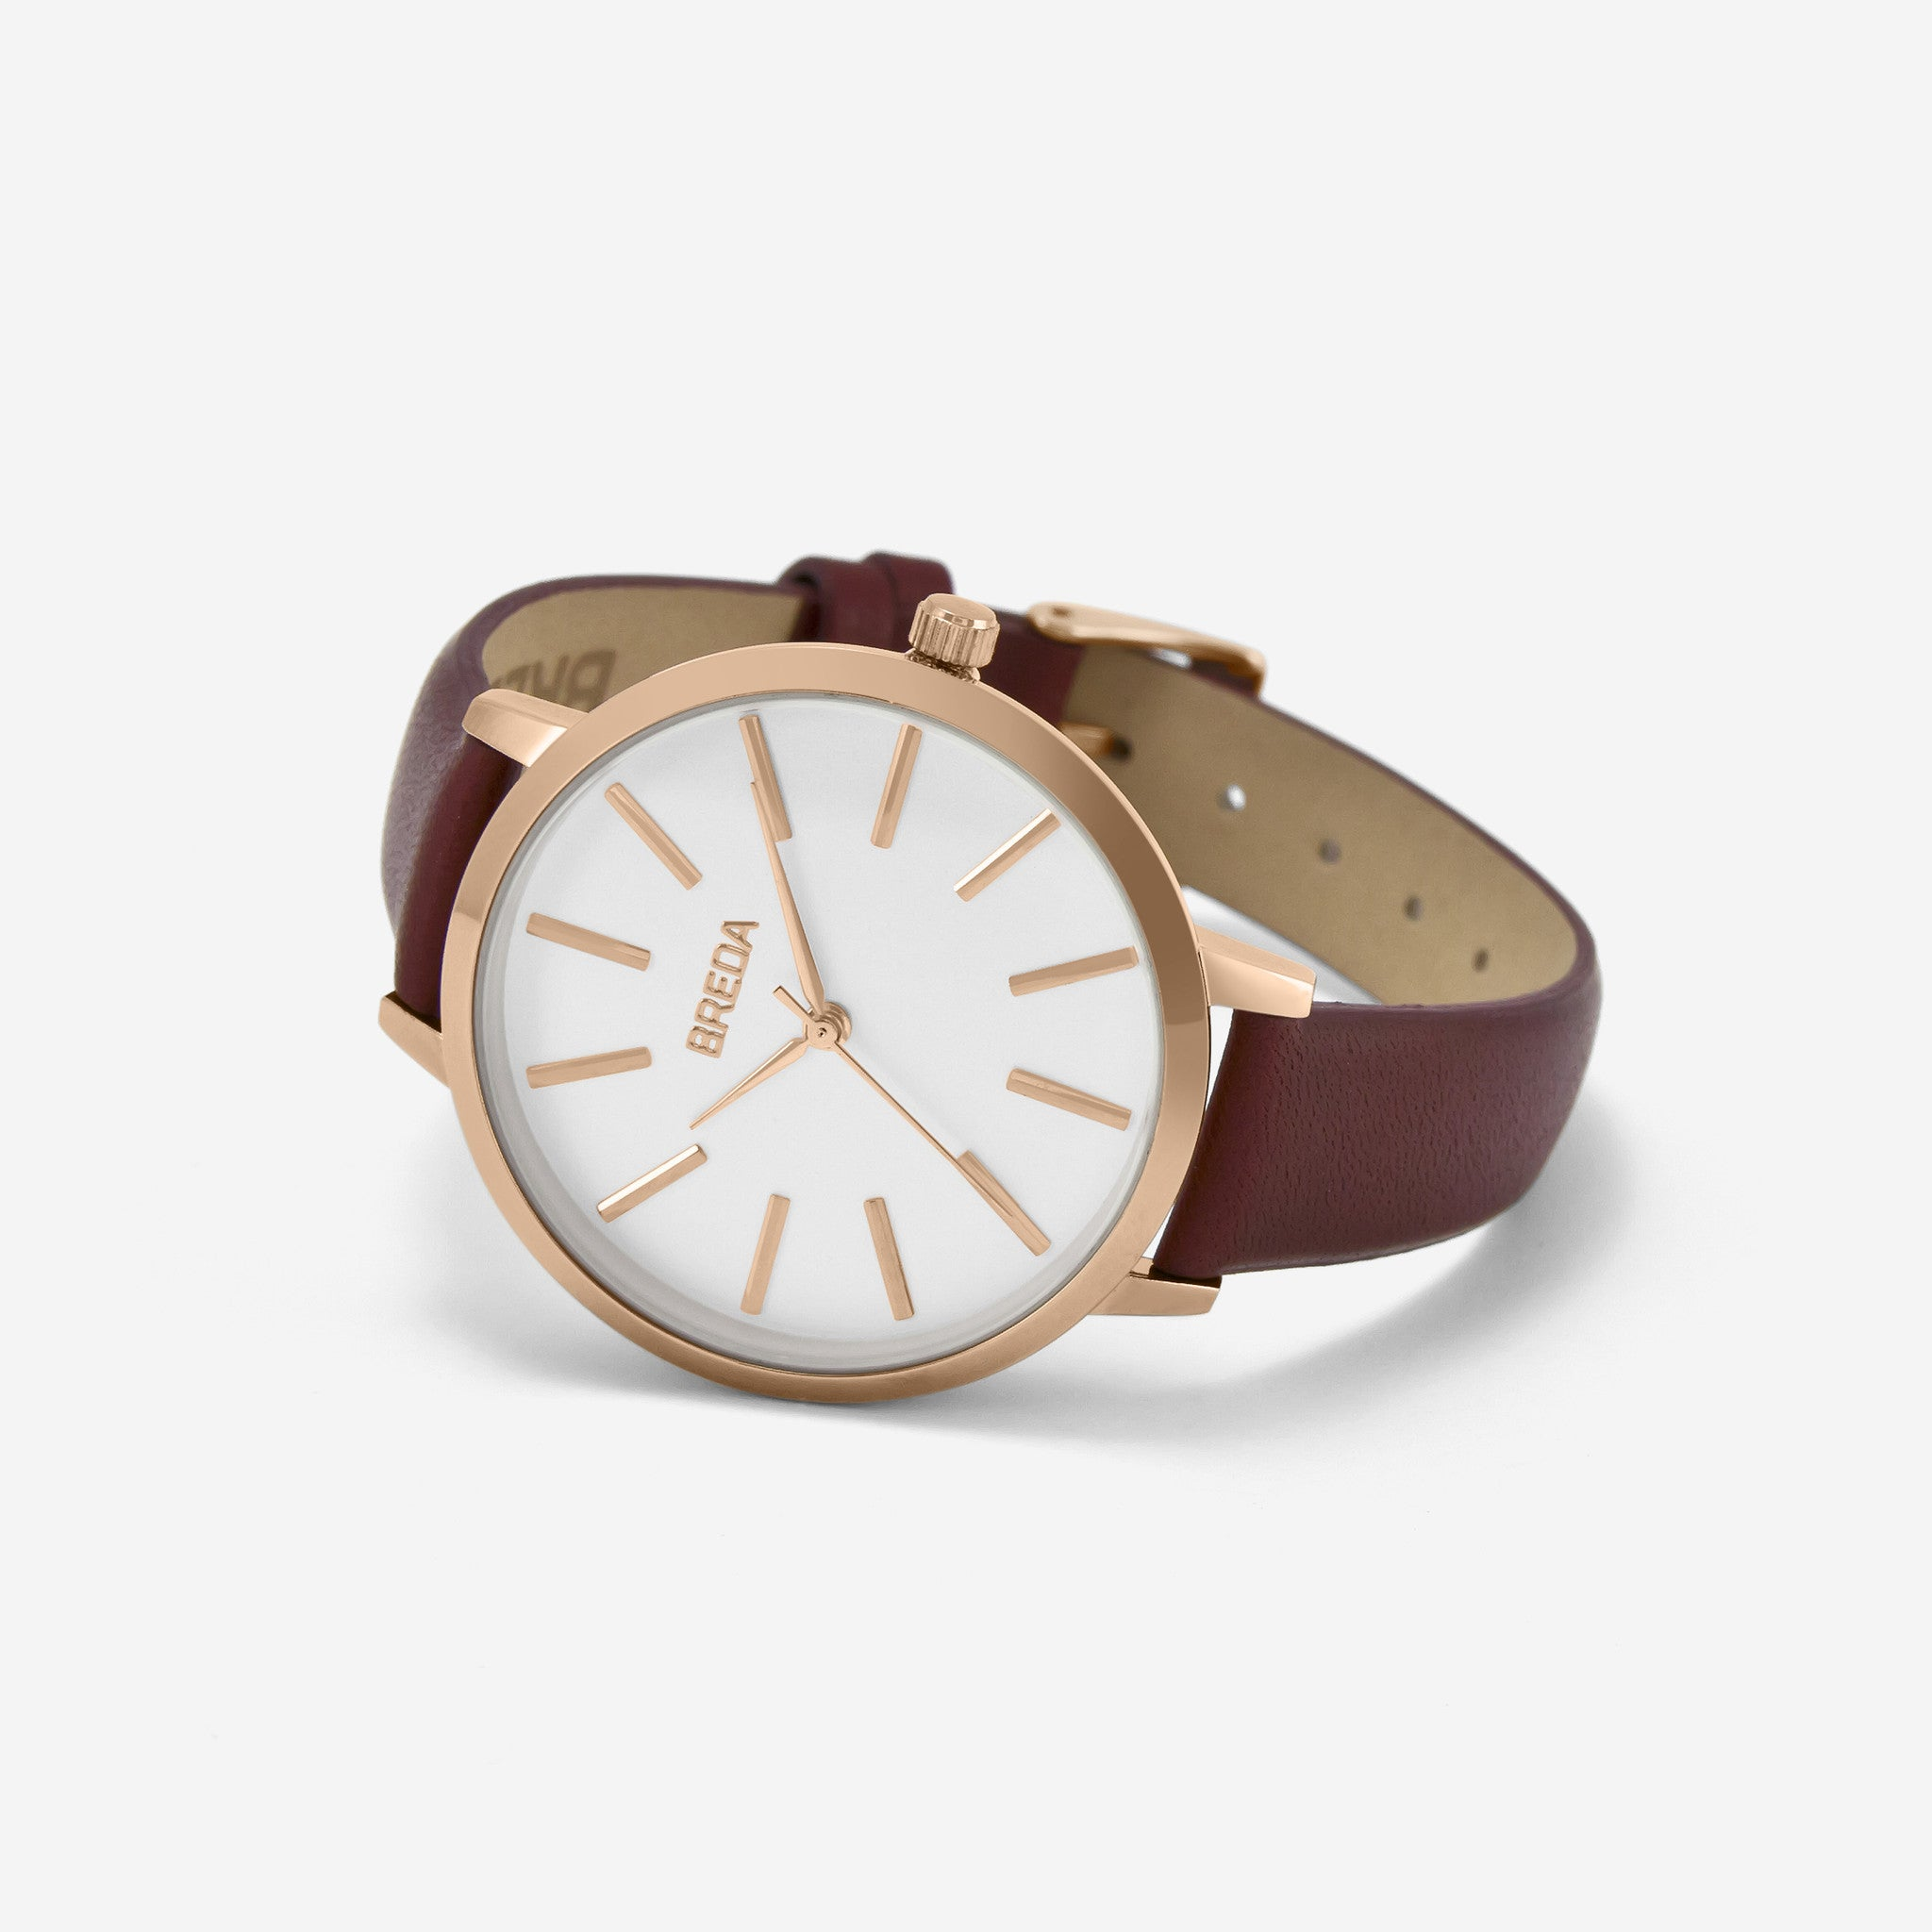 //cdn.shopify.com/s/files/1/0879/6650/products/breda-joule-1722d-rosegold-maroon-watch-angle_1024x1024.jpg?v=1490812510